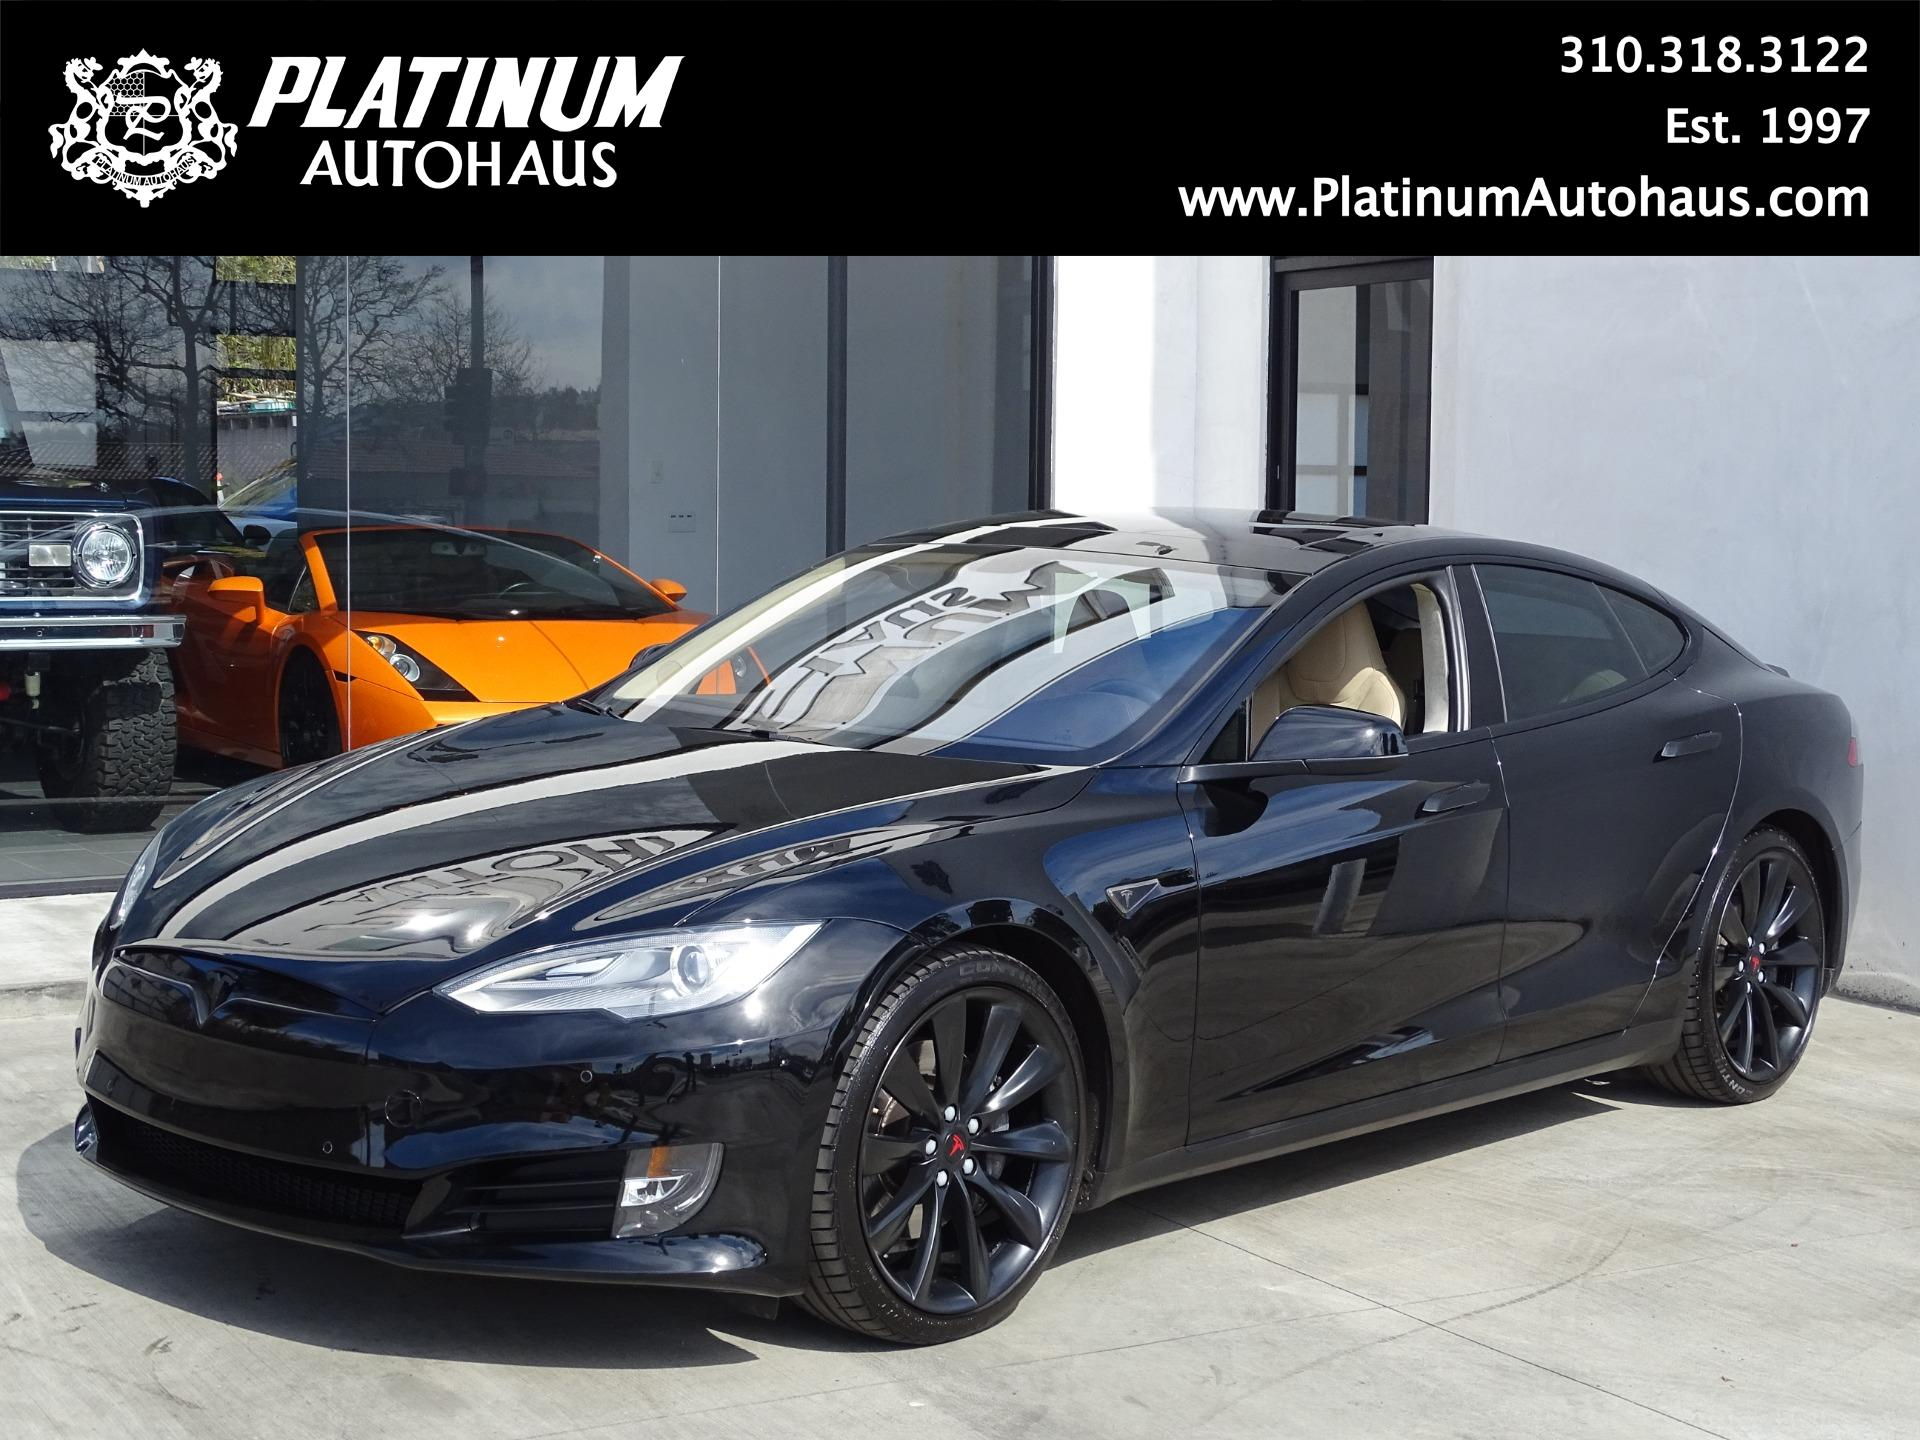 2013 tesla model s performance p85 stock 6144 for sale near redondo beach ca ca. Black Bedroom Furniture Sets. Home Design Ideas